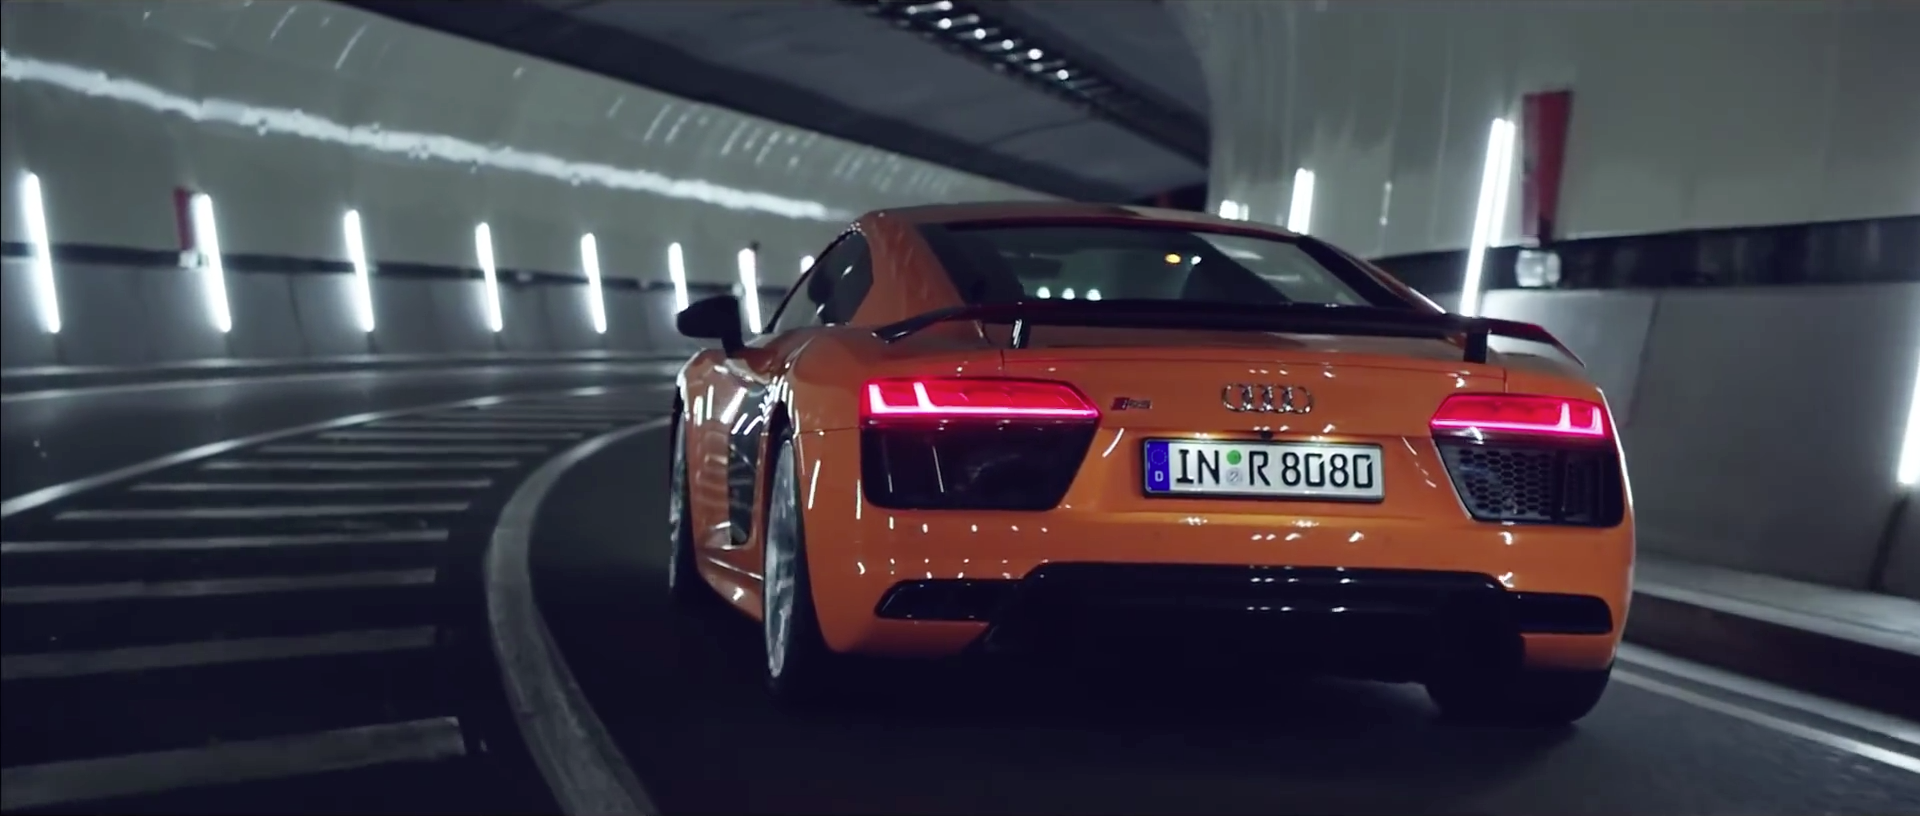 Audi R TV Commercial Banned For Being Too Exciting We Despair - Audi r8 commercial